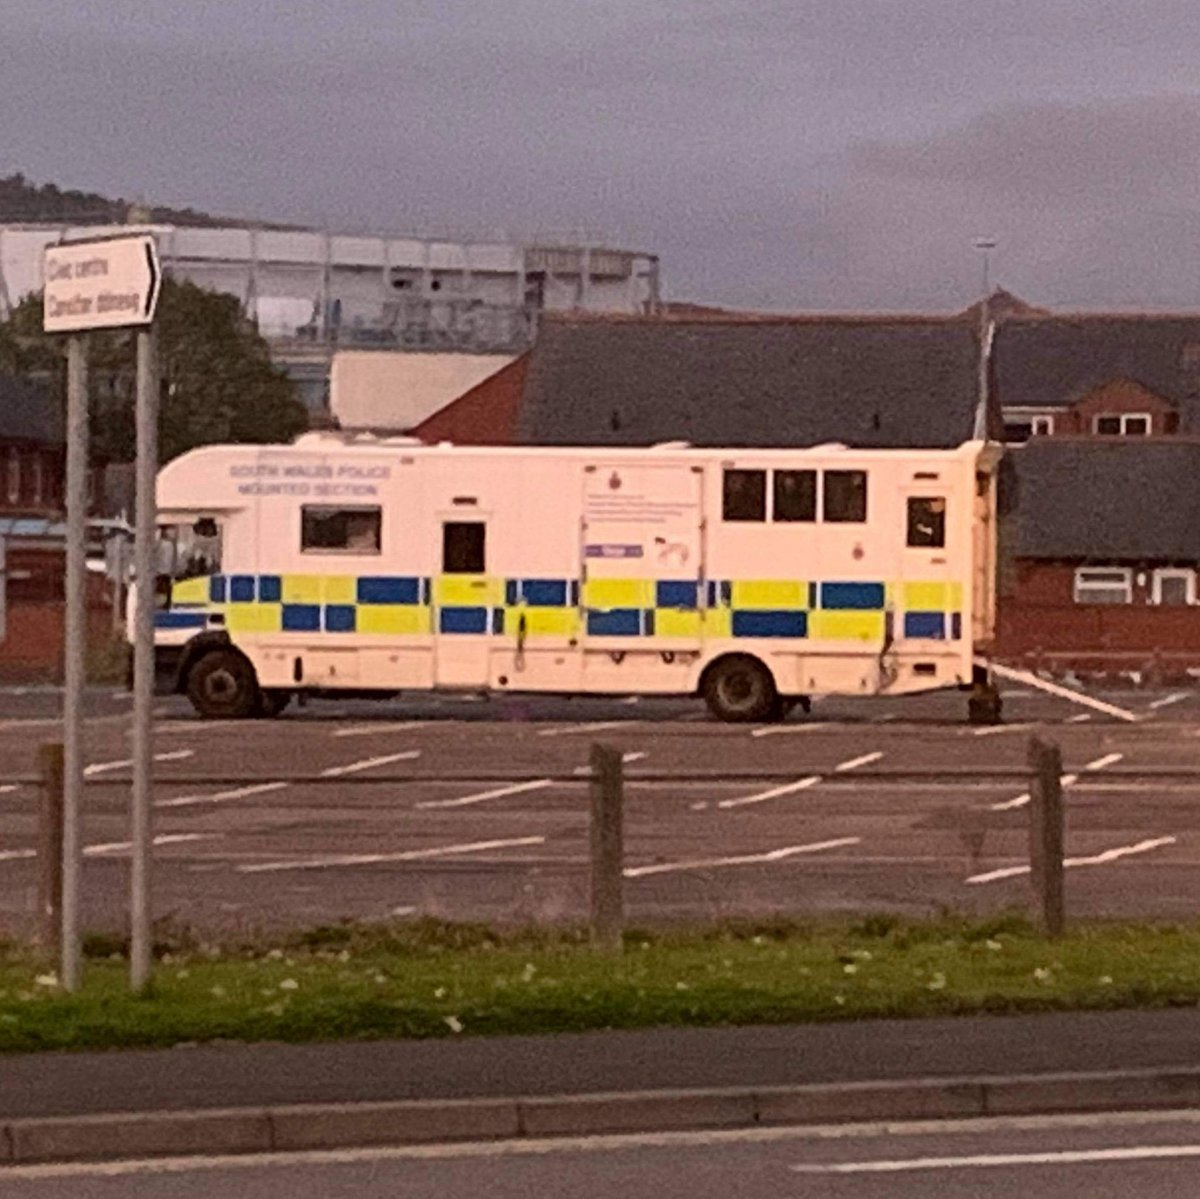 Well I found @SWPSwansea horses mobile home (looks very swanky 😂) on my daily walk.  No sign of the horsies though lol.  Keep up the good work guys, girls, horses and doggies.  #thinblueline #respect #respectthepolice #youd_be_sorry_if_they_werent_here https://t.co/DJeJxZg340